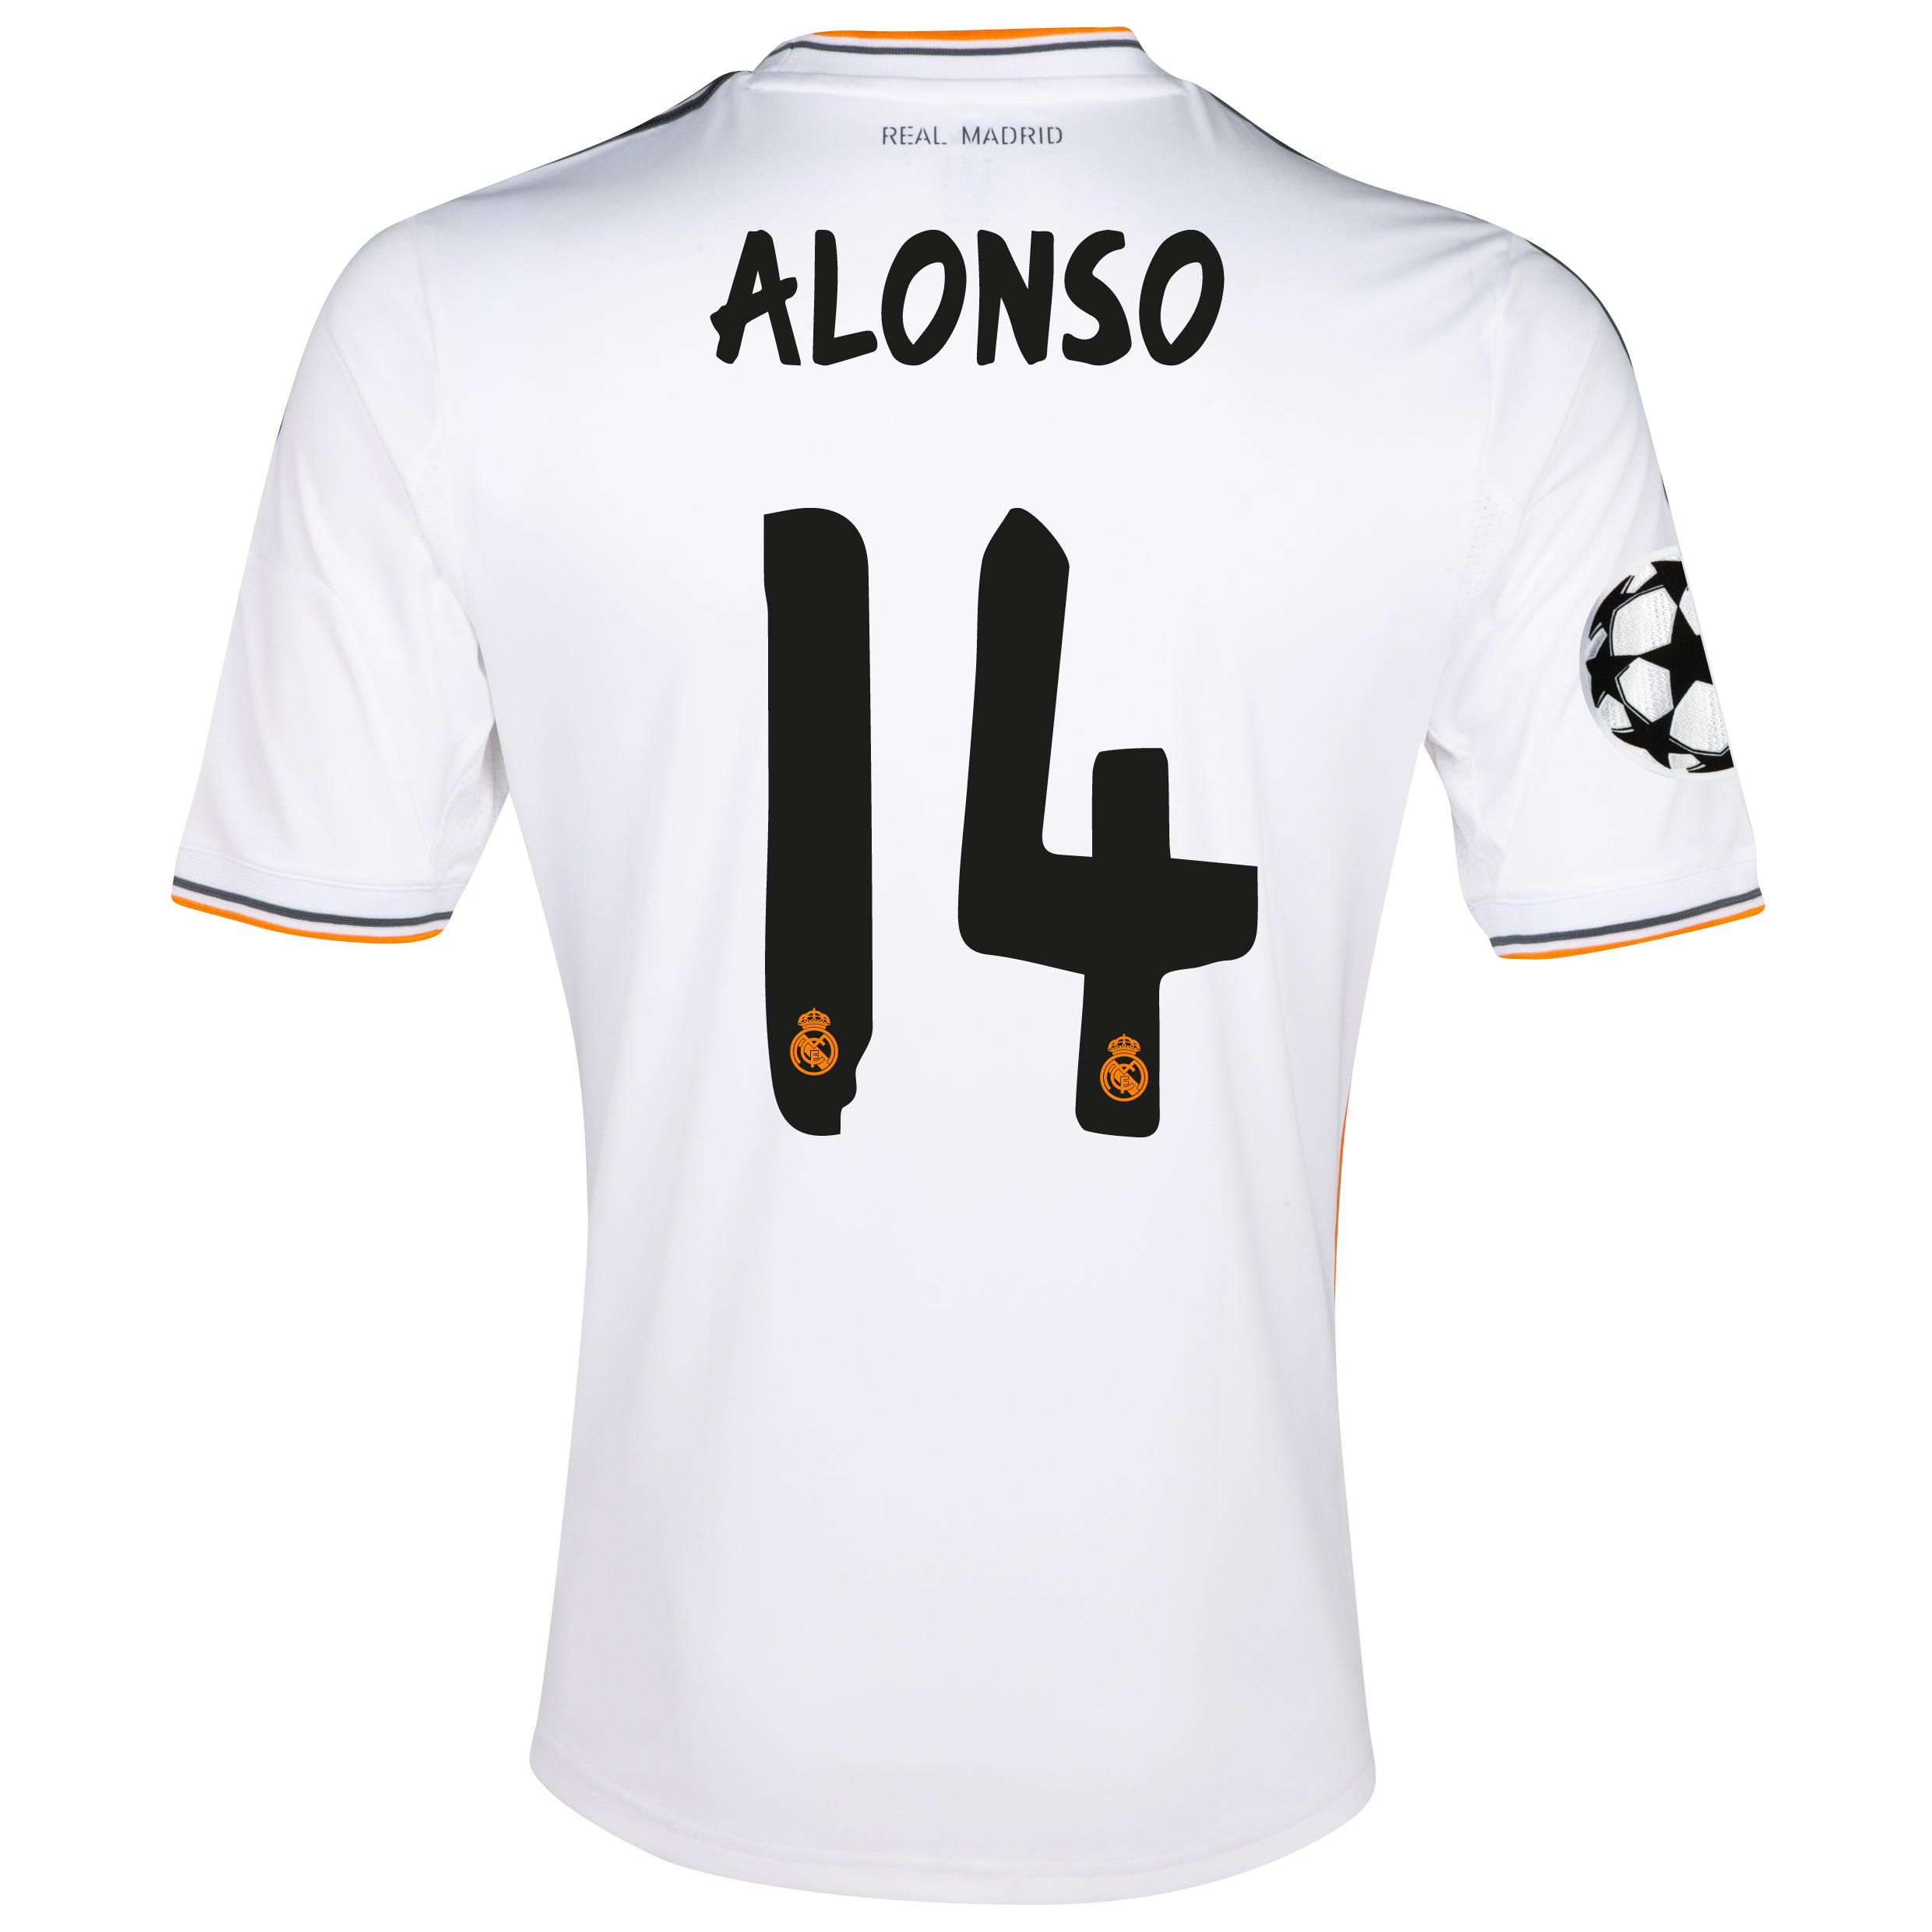 Real Madrid UEFA Champions League Home Shirt 2013/14 - kids with Alonso 14 printing